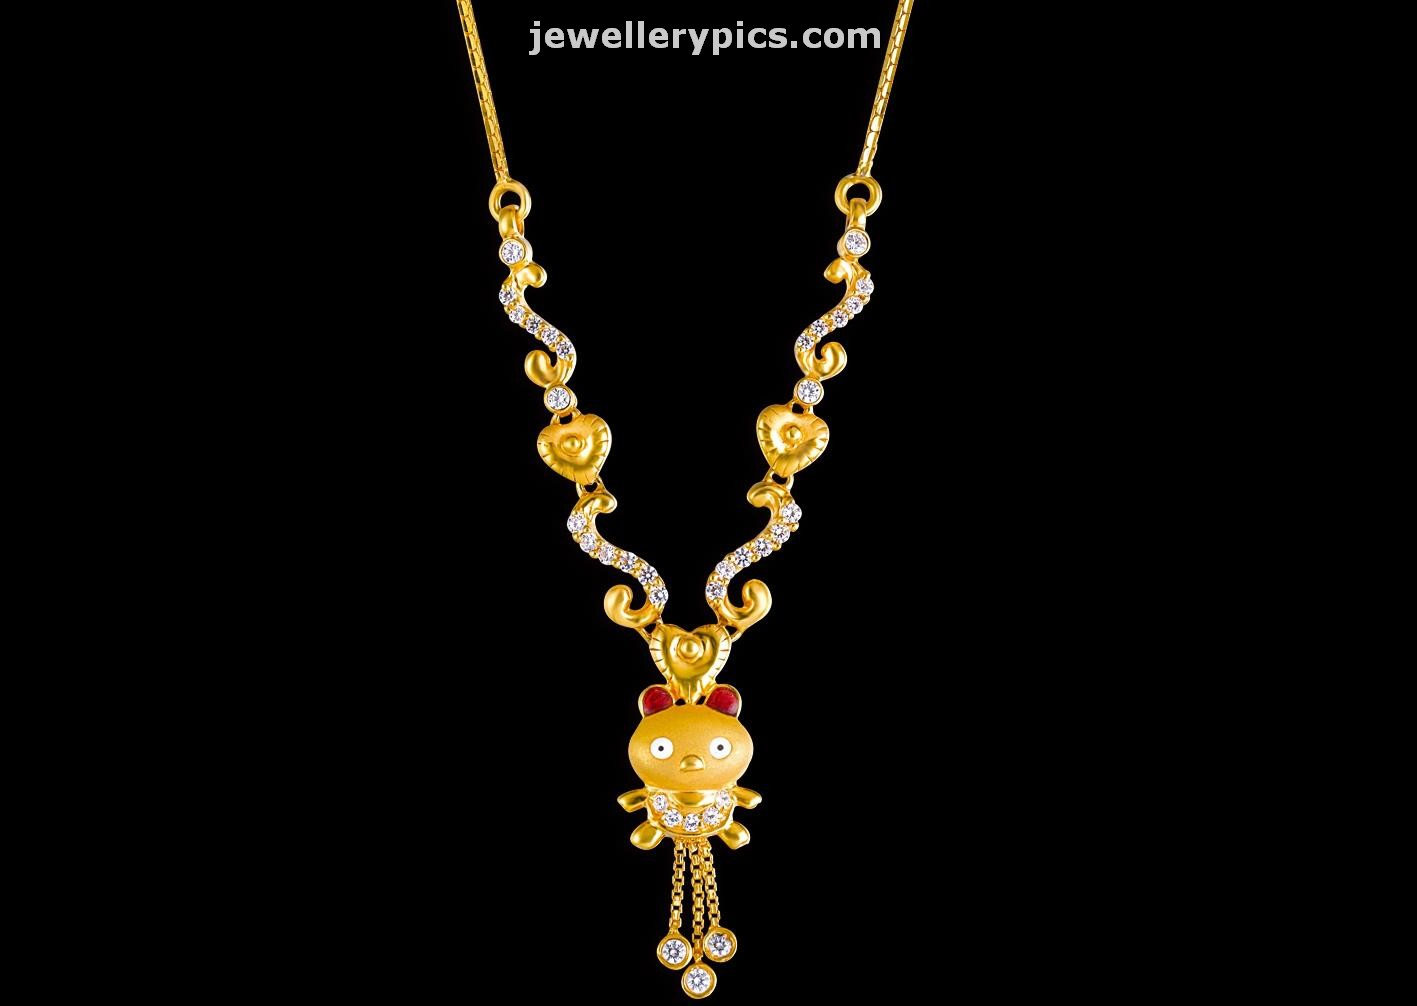 Gold Earrings Models In Kalyan Jewellers Images Jewelry Design Gallery